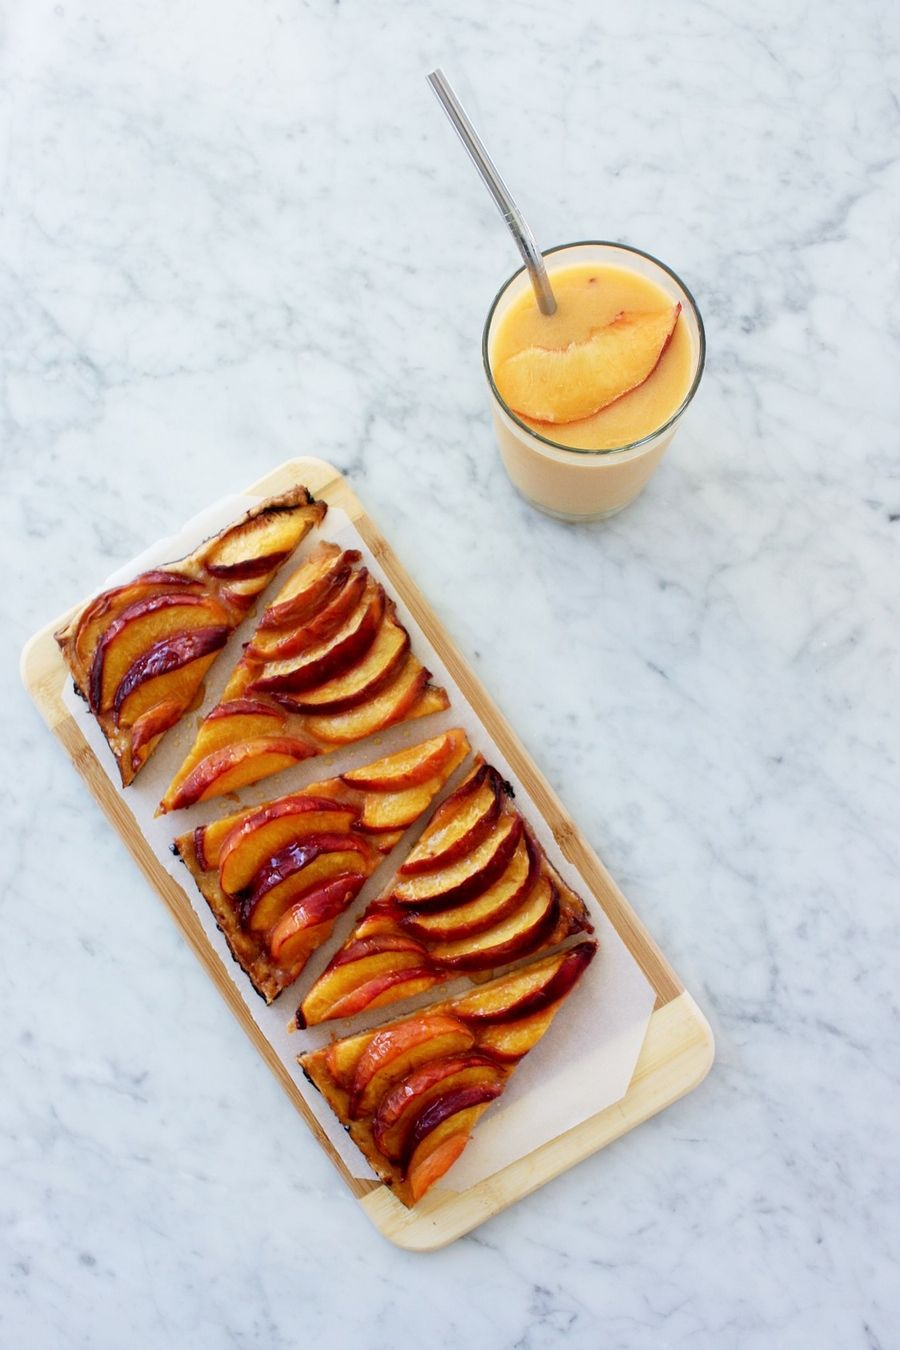 RECIPE - THIN PEACH TART